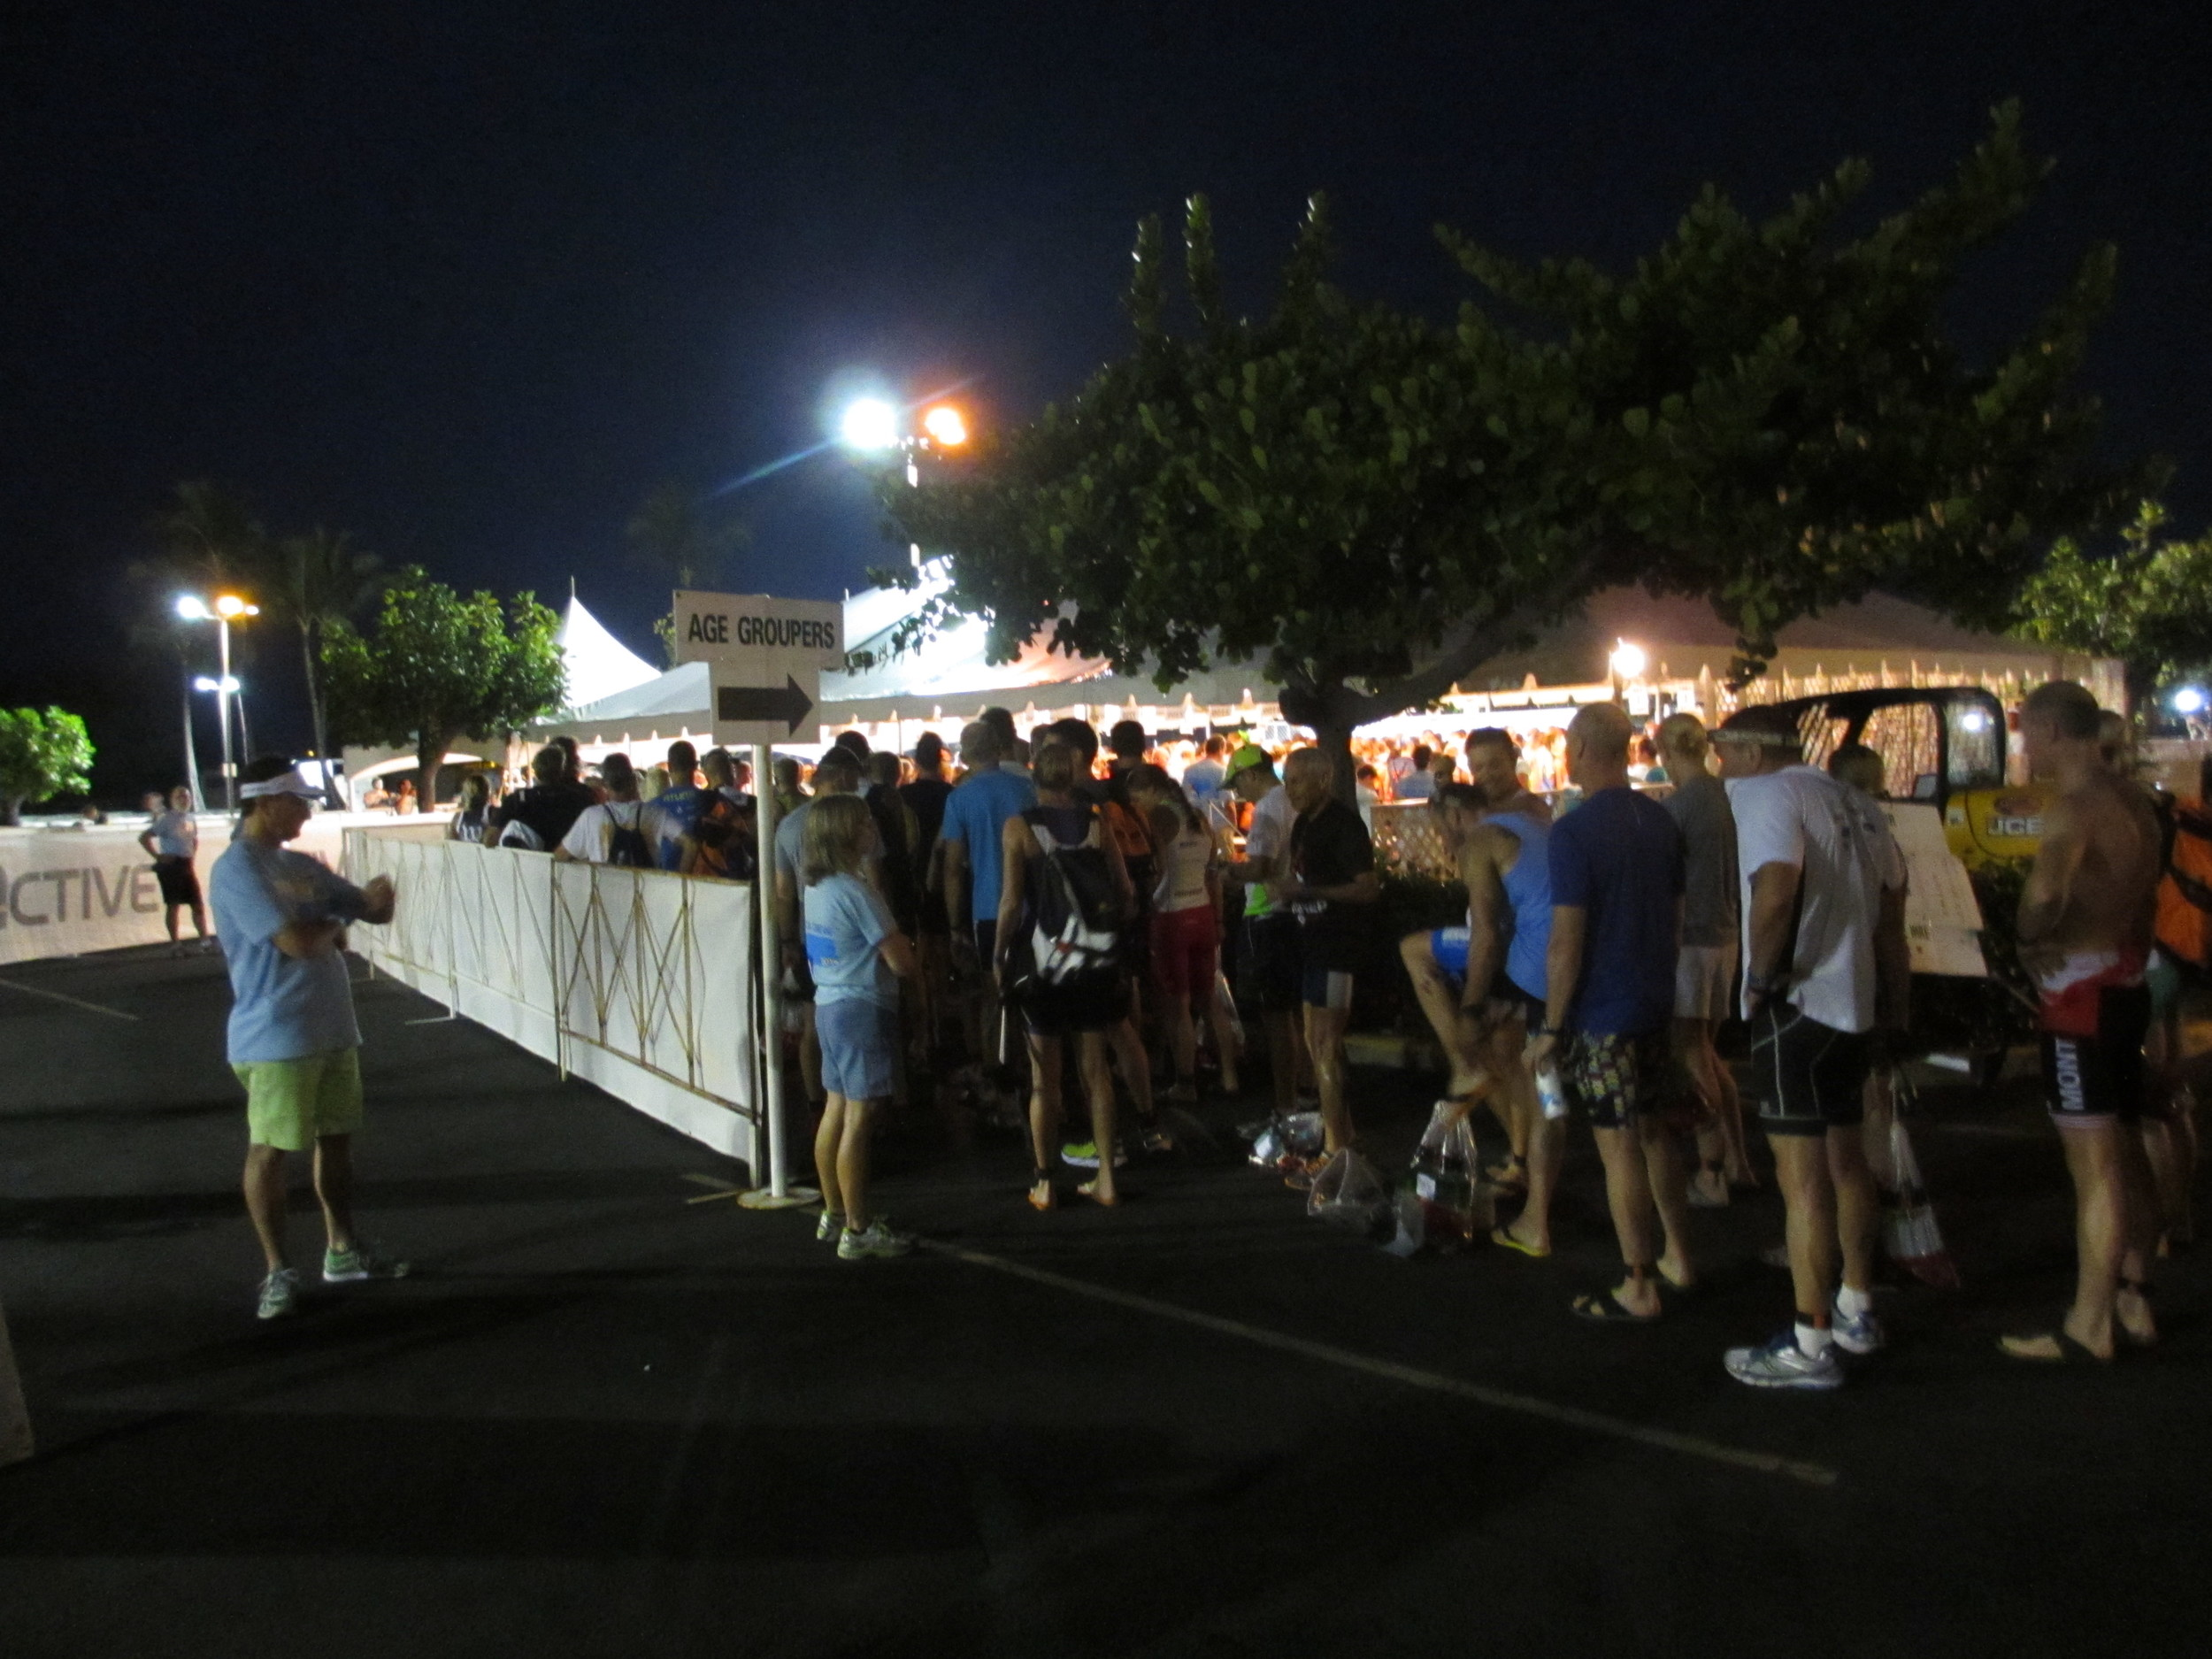 Age groupers lining up for body marking.